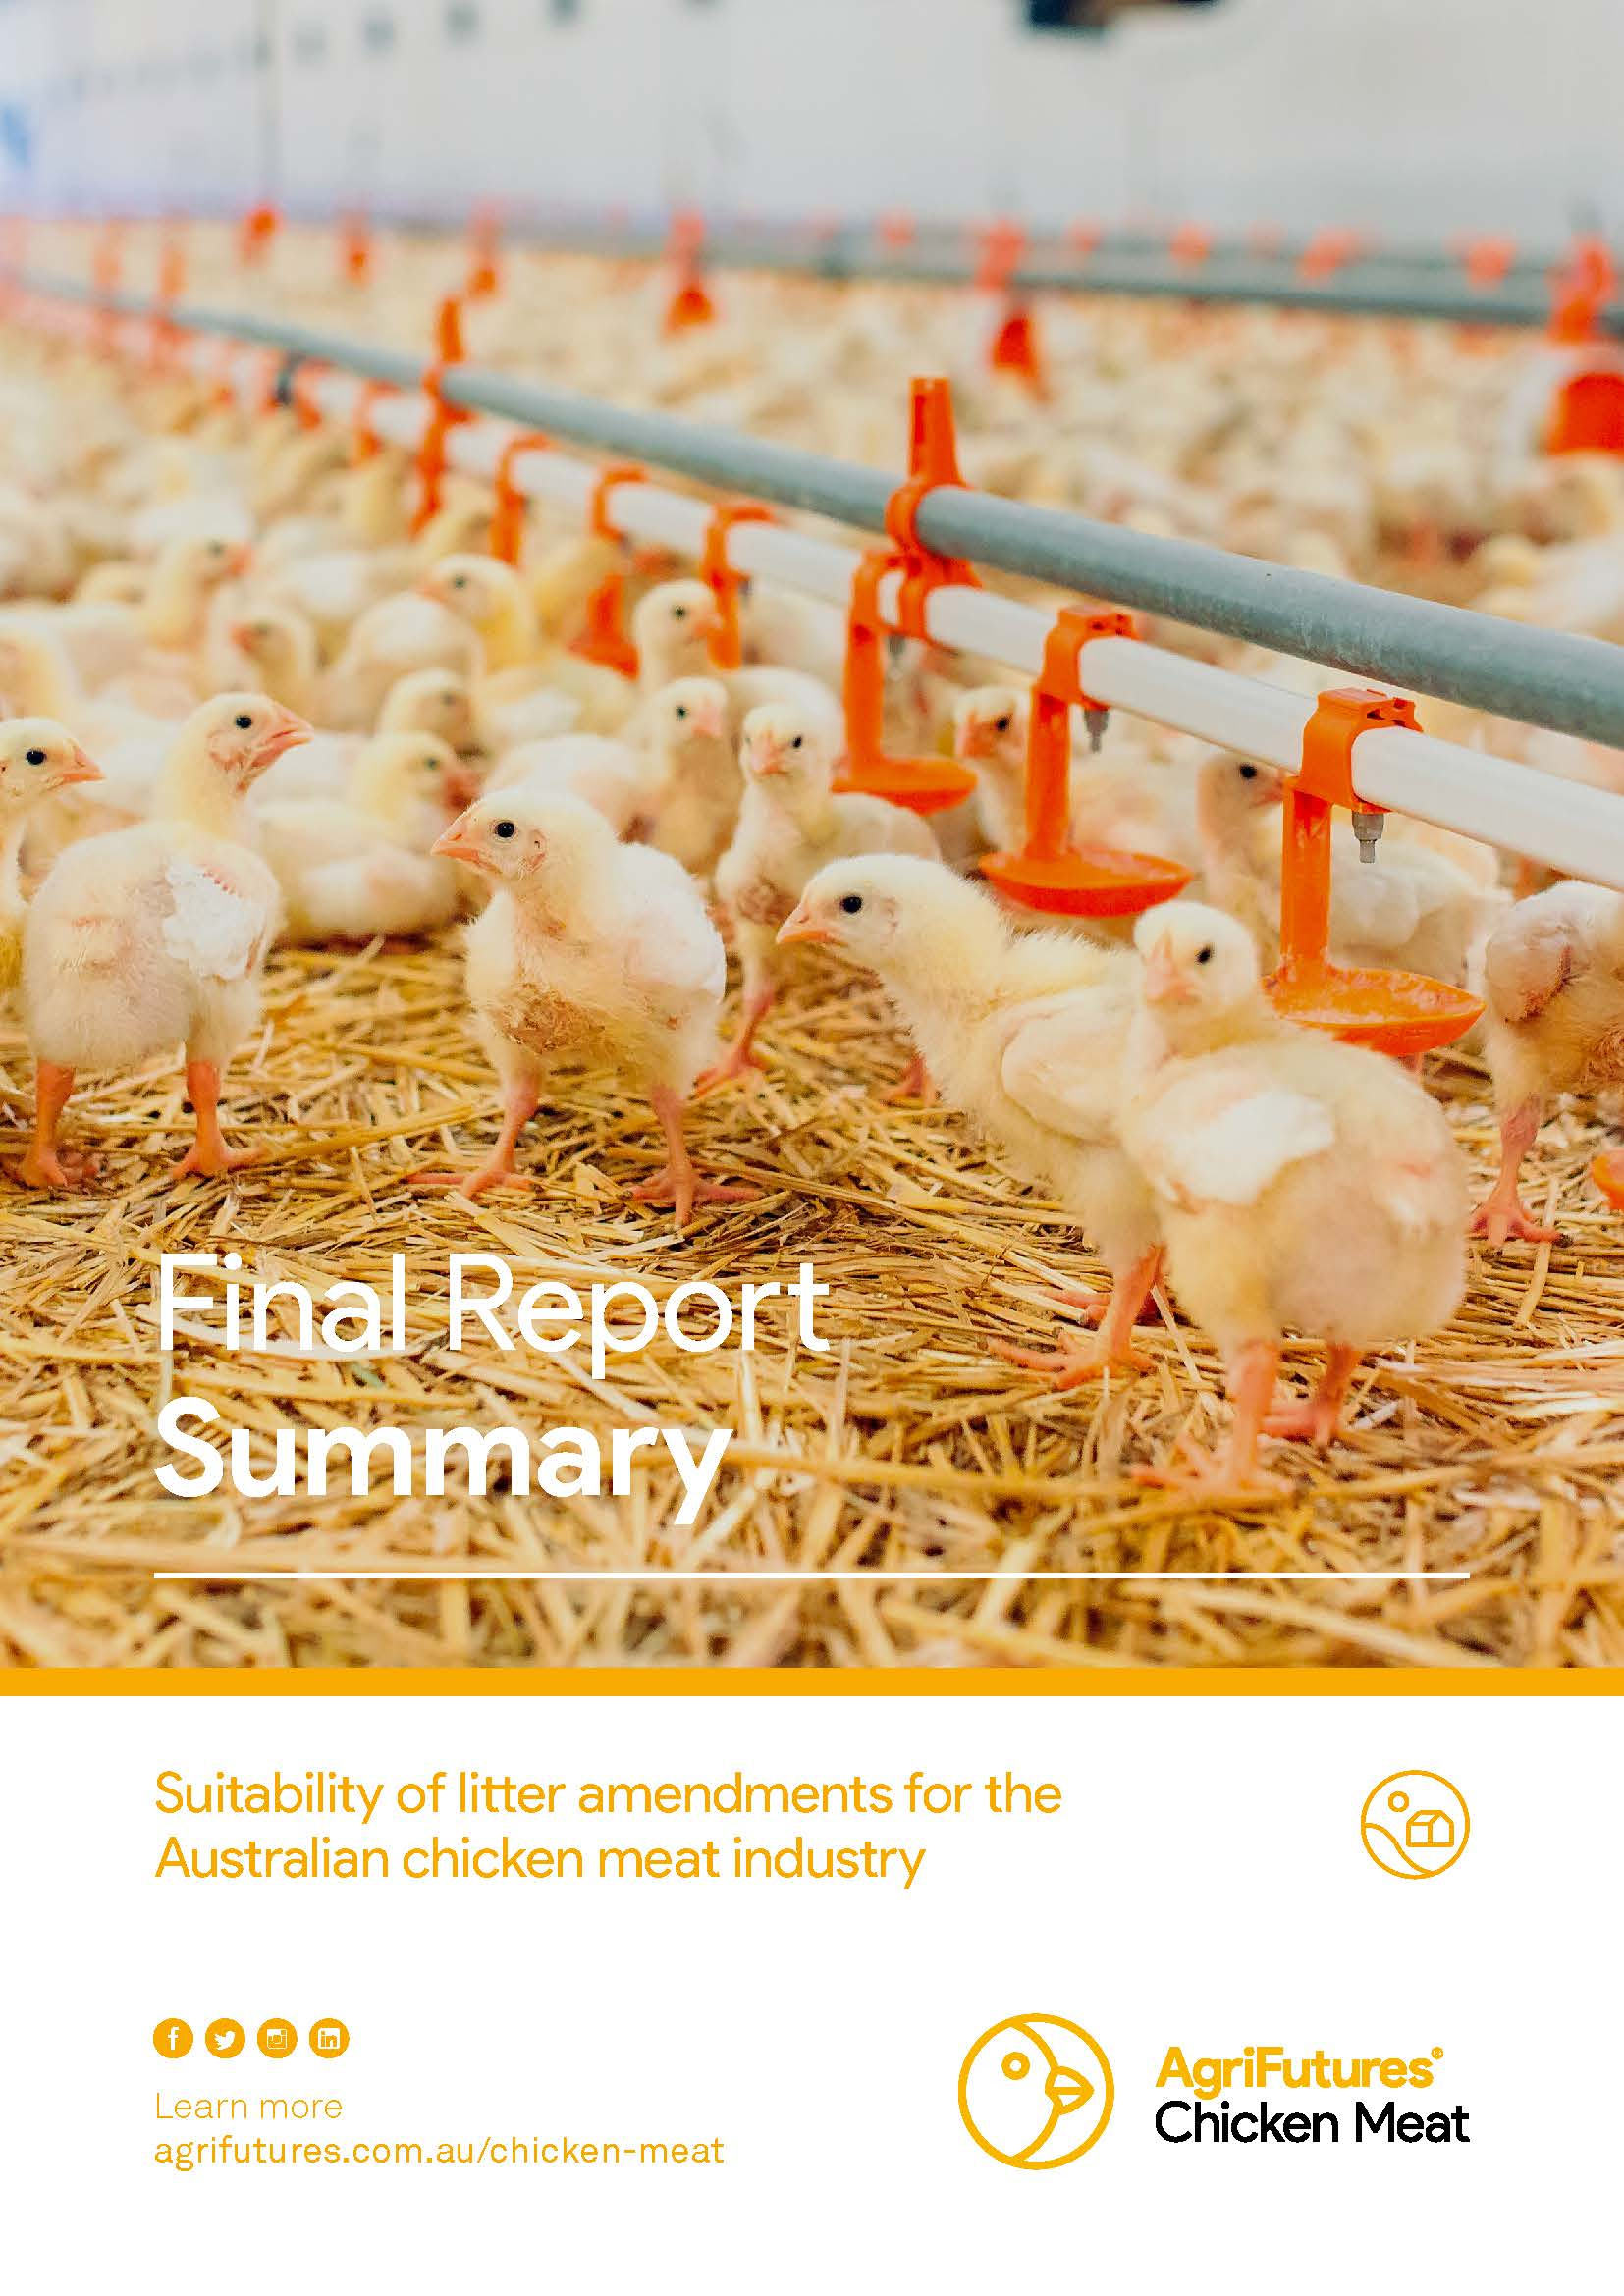 Final report summary: Suitability of litter amendments for the Australian chicken meat industry - image